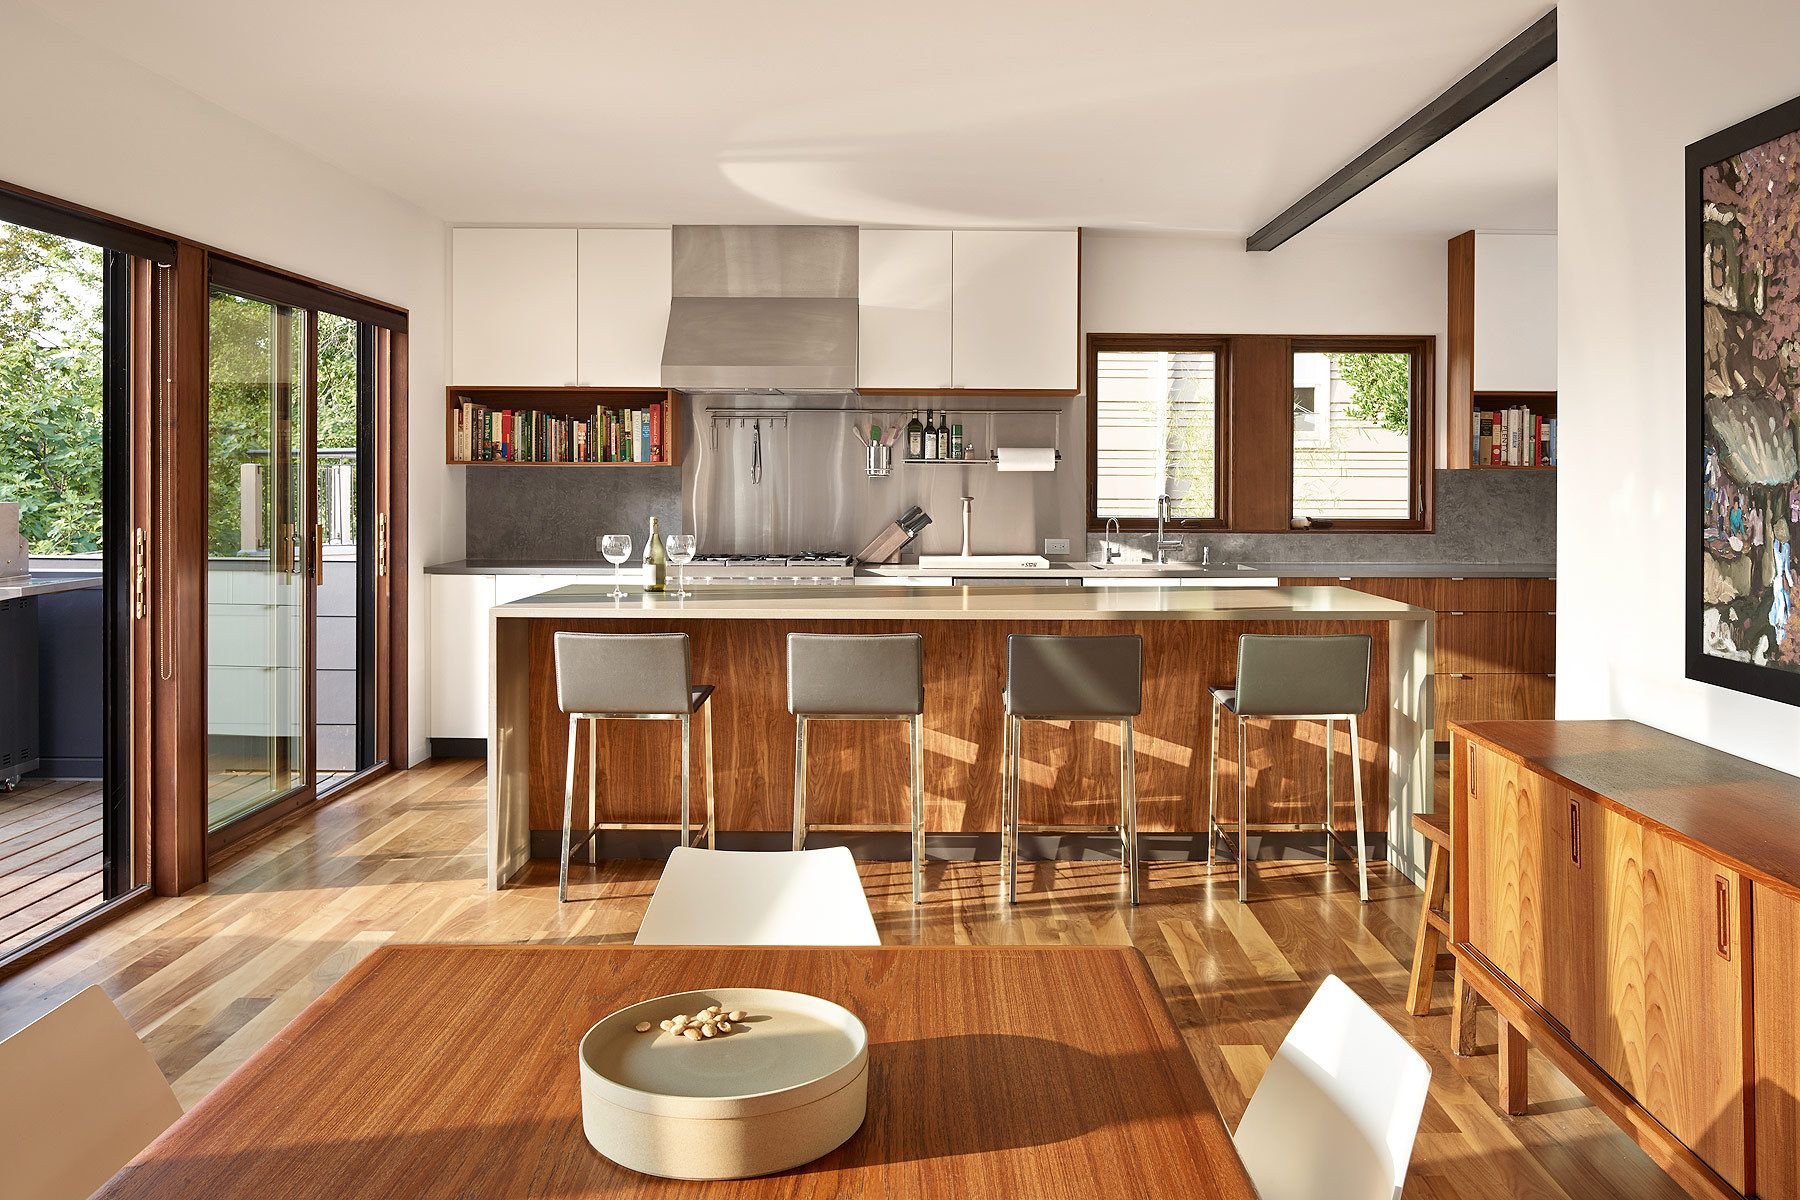 kitchen, archdaily, home design, architecture